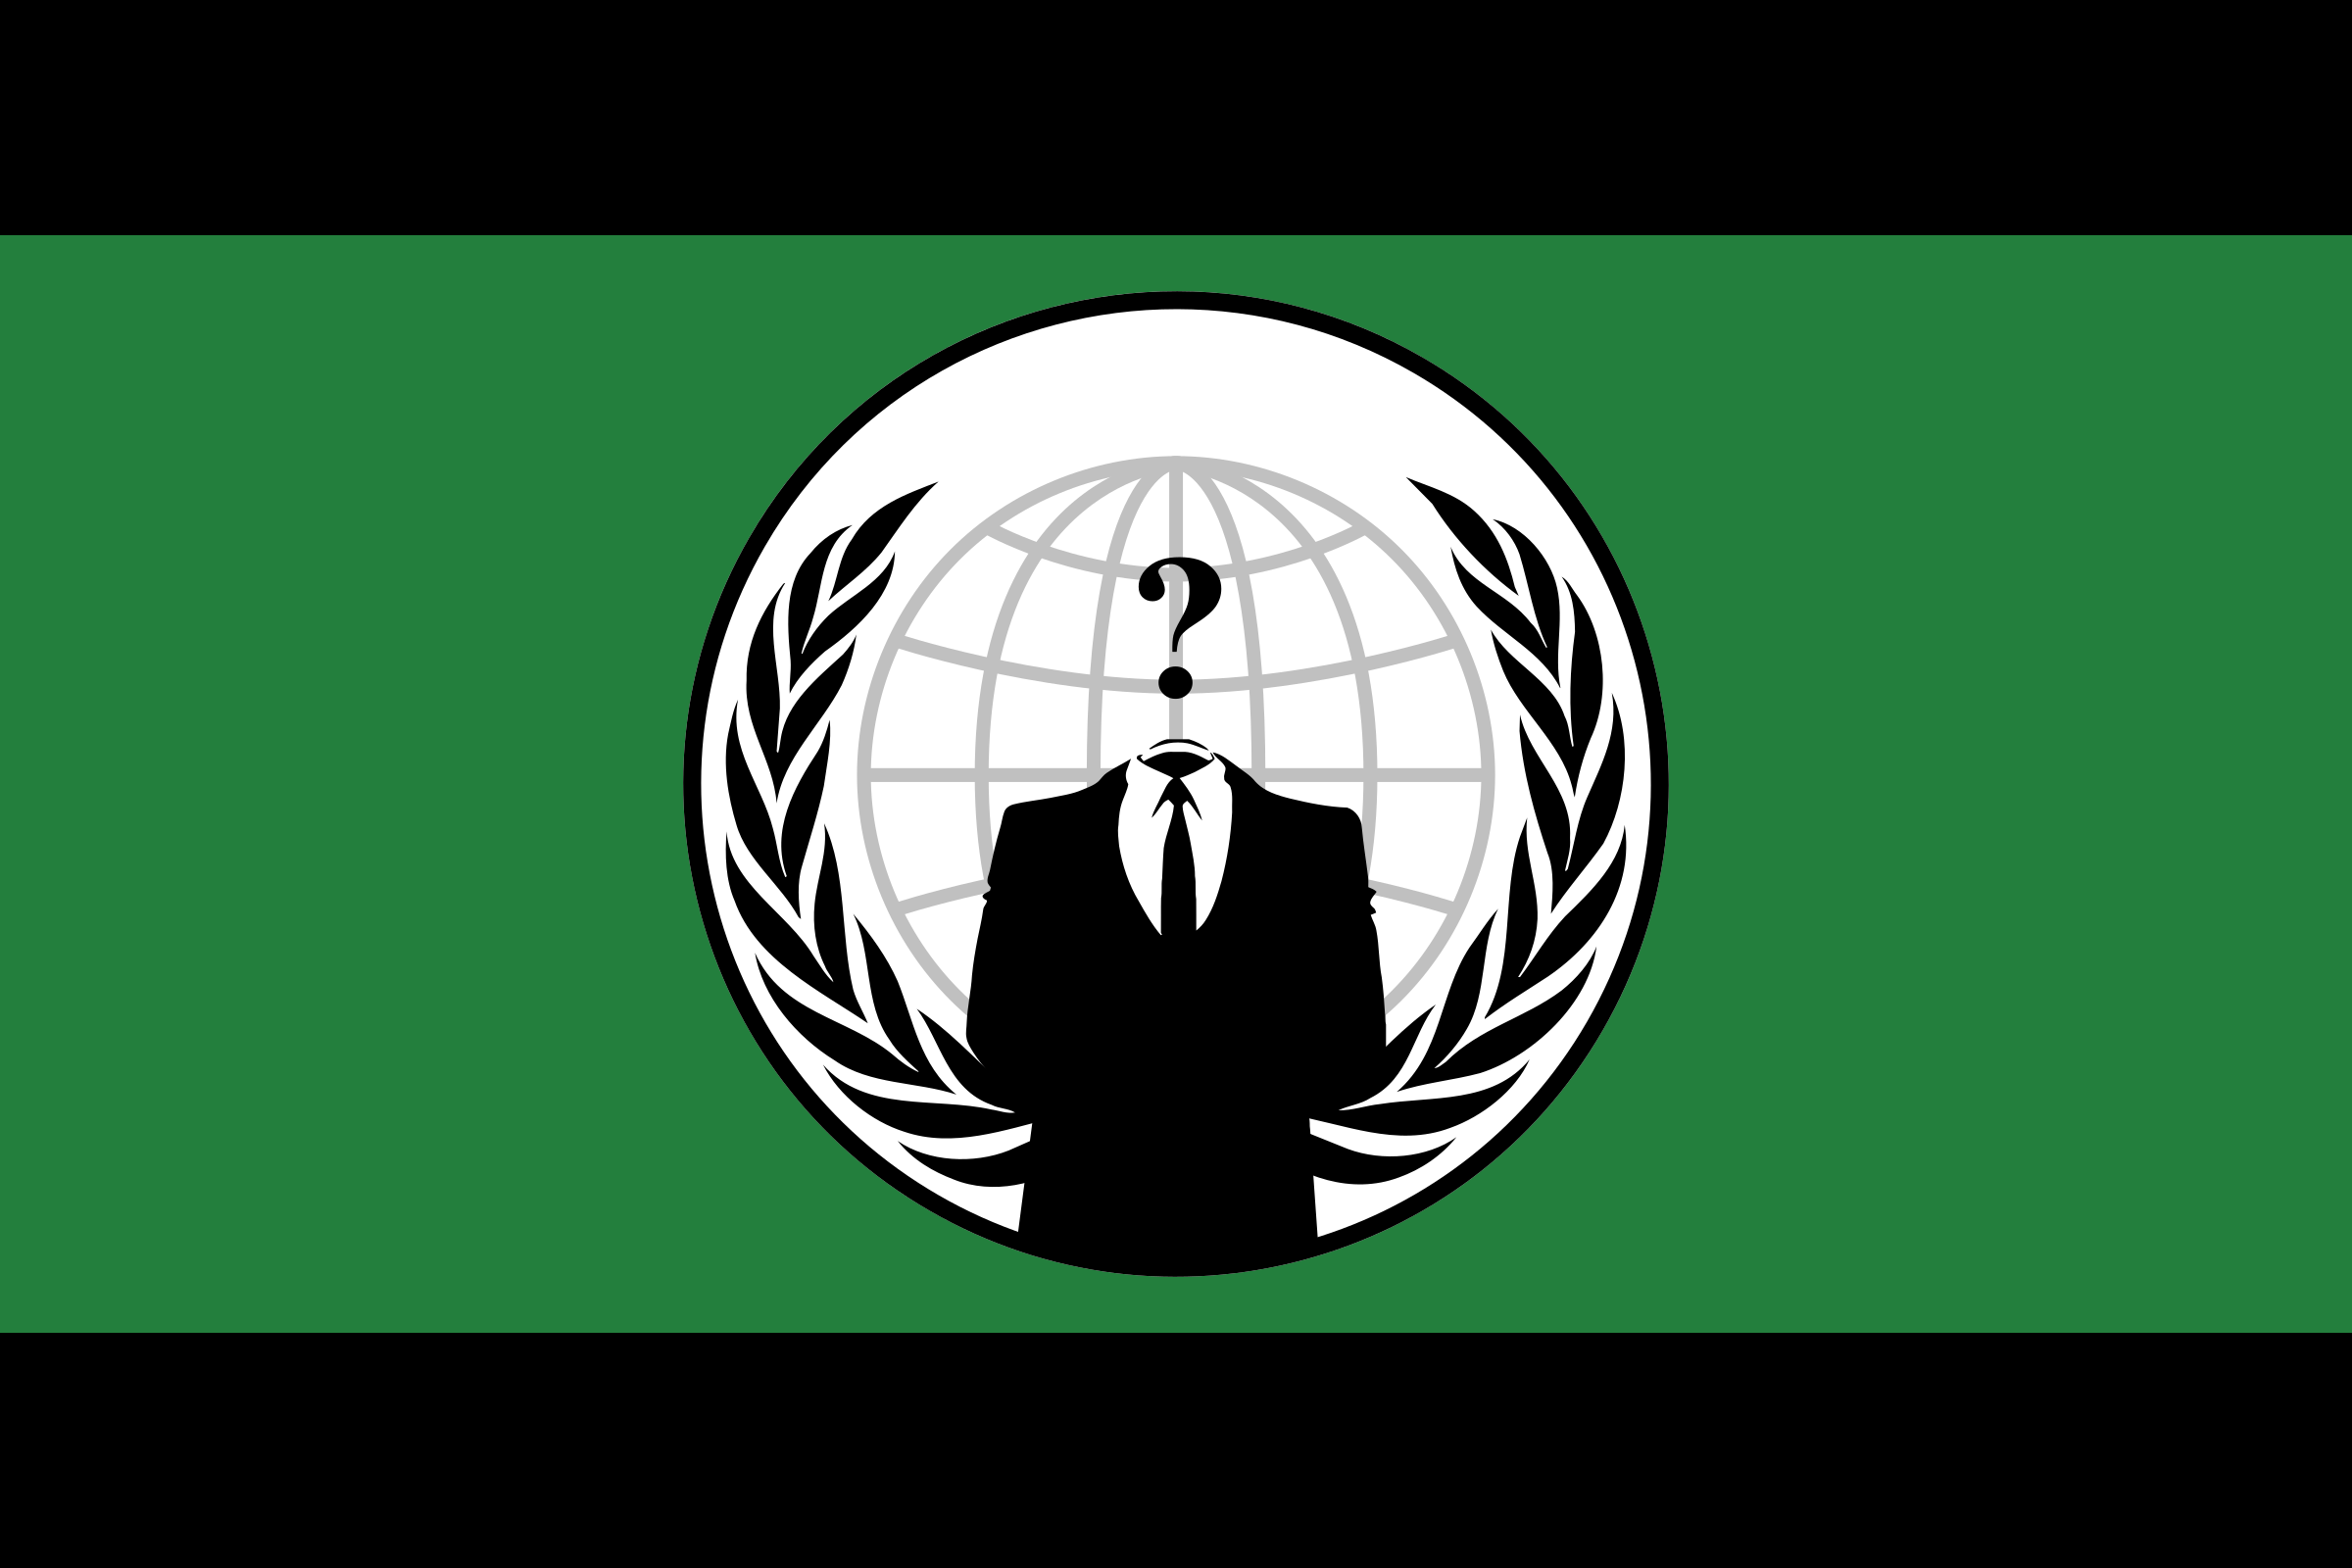 Anonymous flag by rapperklimov